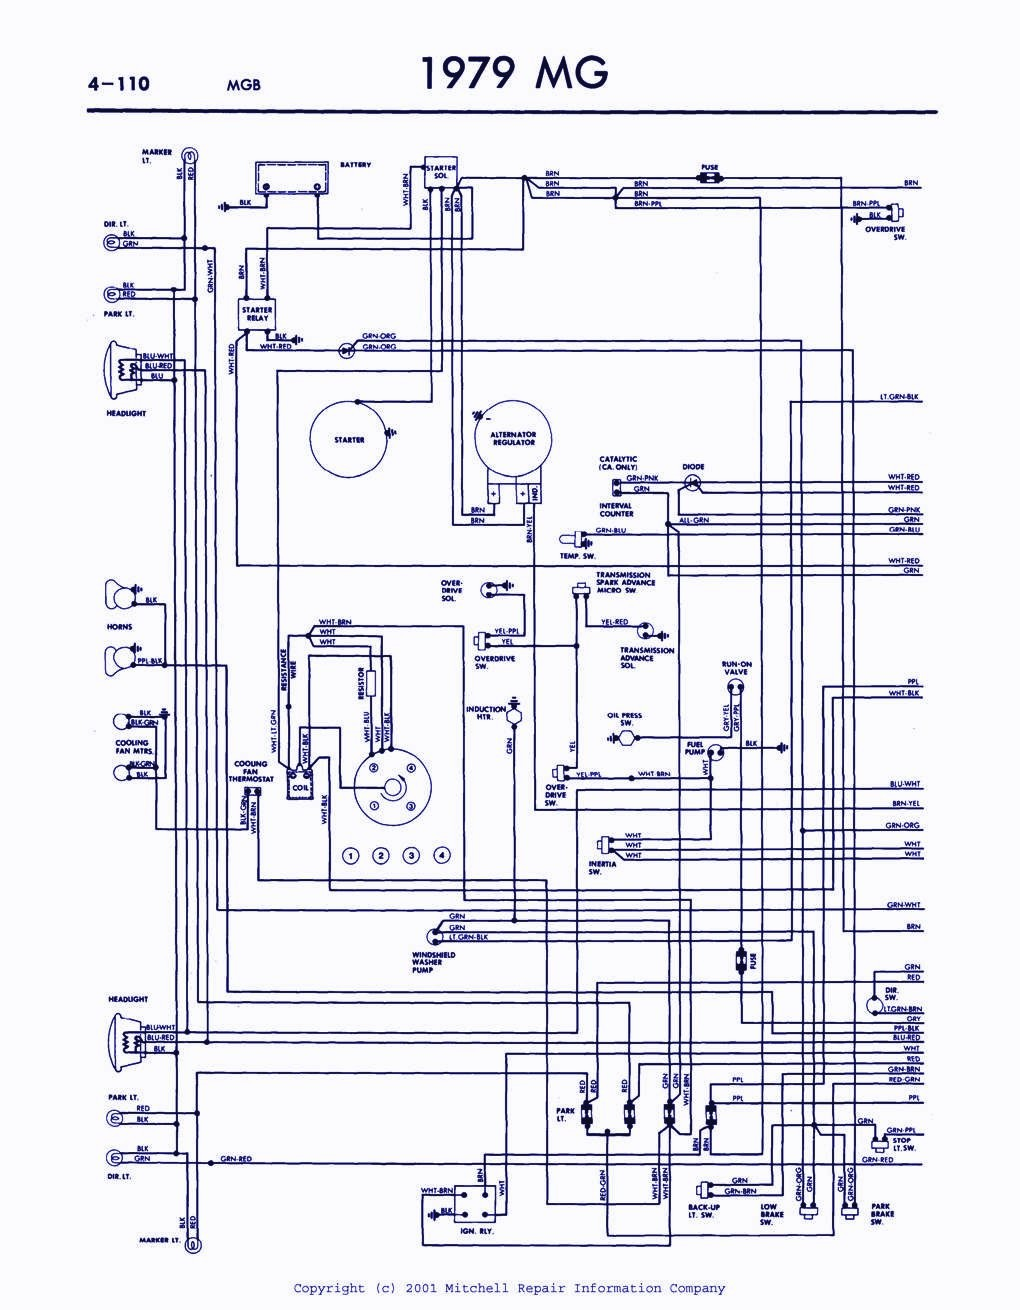 mgb wiring diagrams automotive wiring data schema u2022 rh paletteparty co 1978 MGB Wiring Harness Installation MGB Alternator Conversion Wiring Diagram